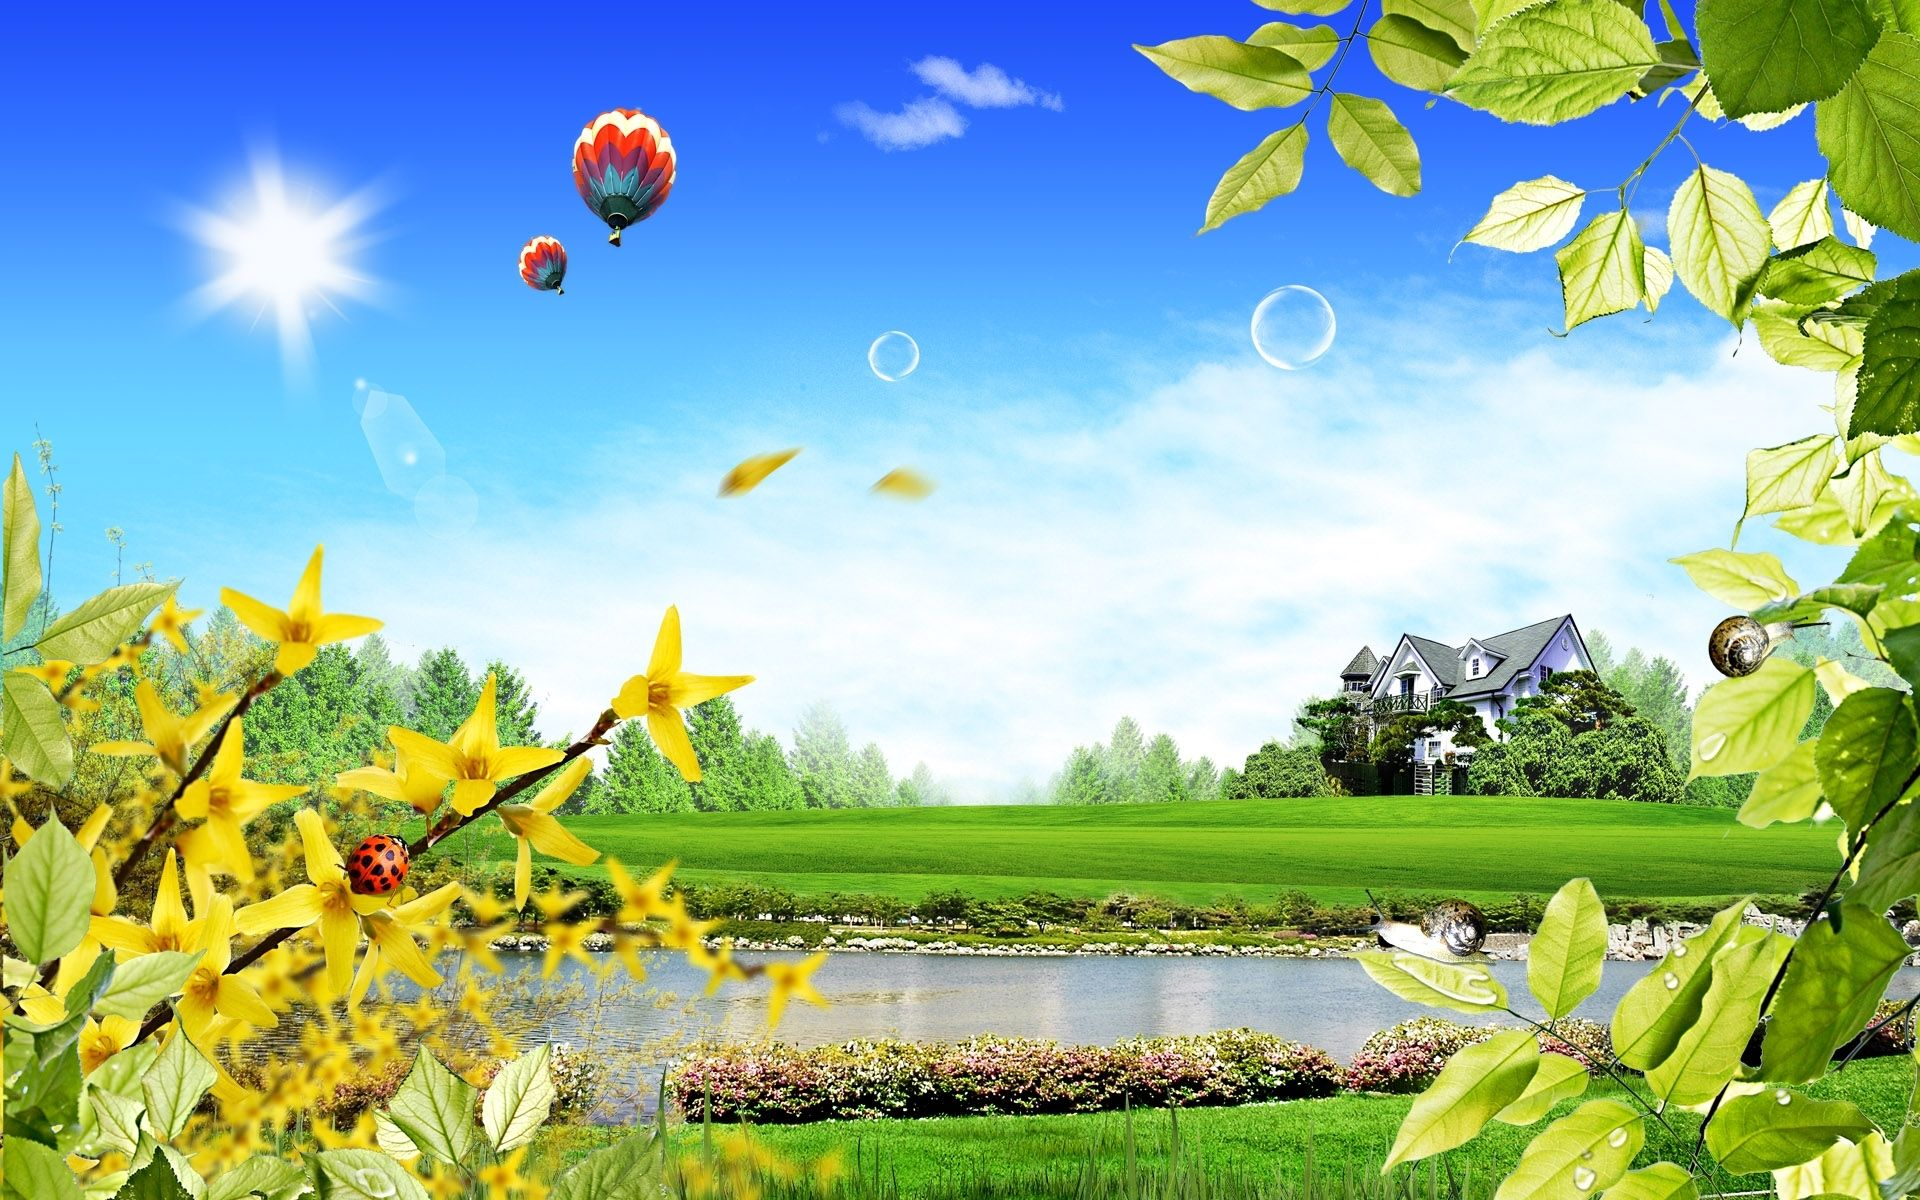 Beautiful Hd Scenic Pictures Description From 3d Beautiful Scenery